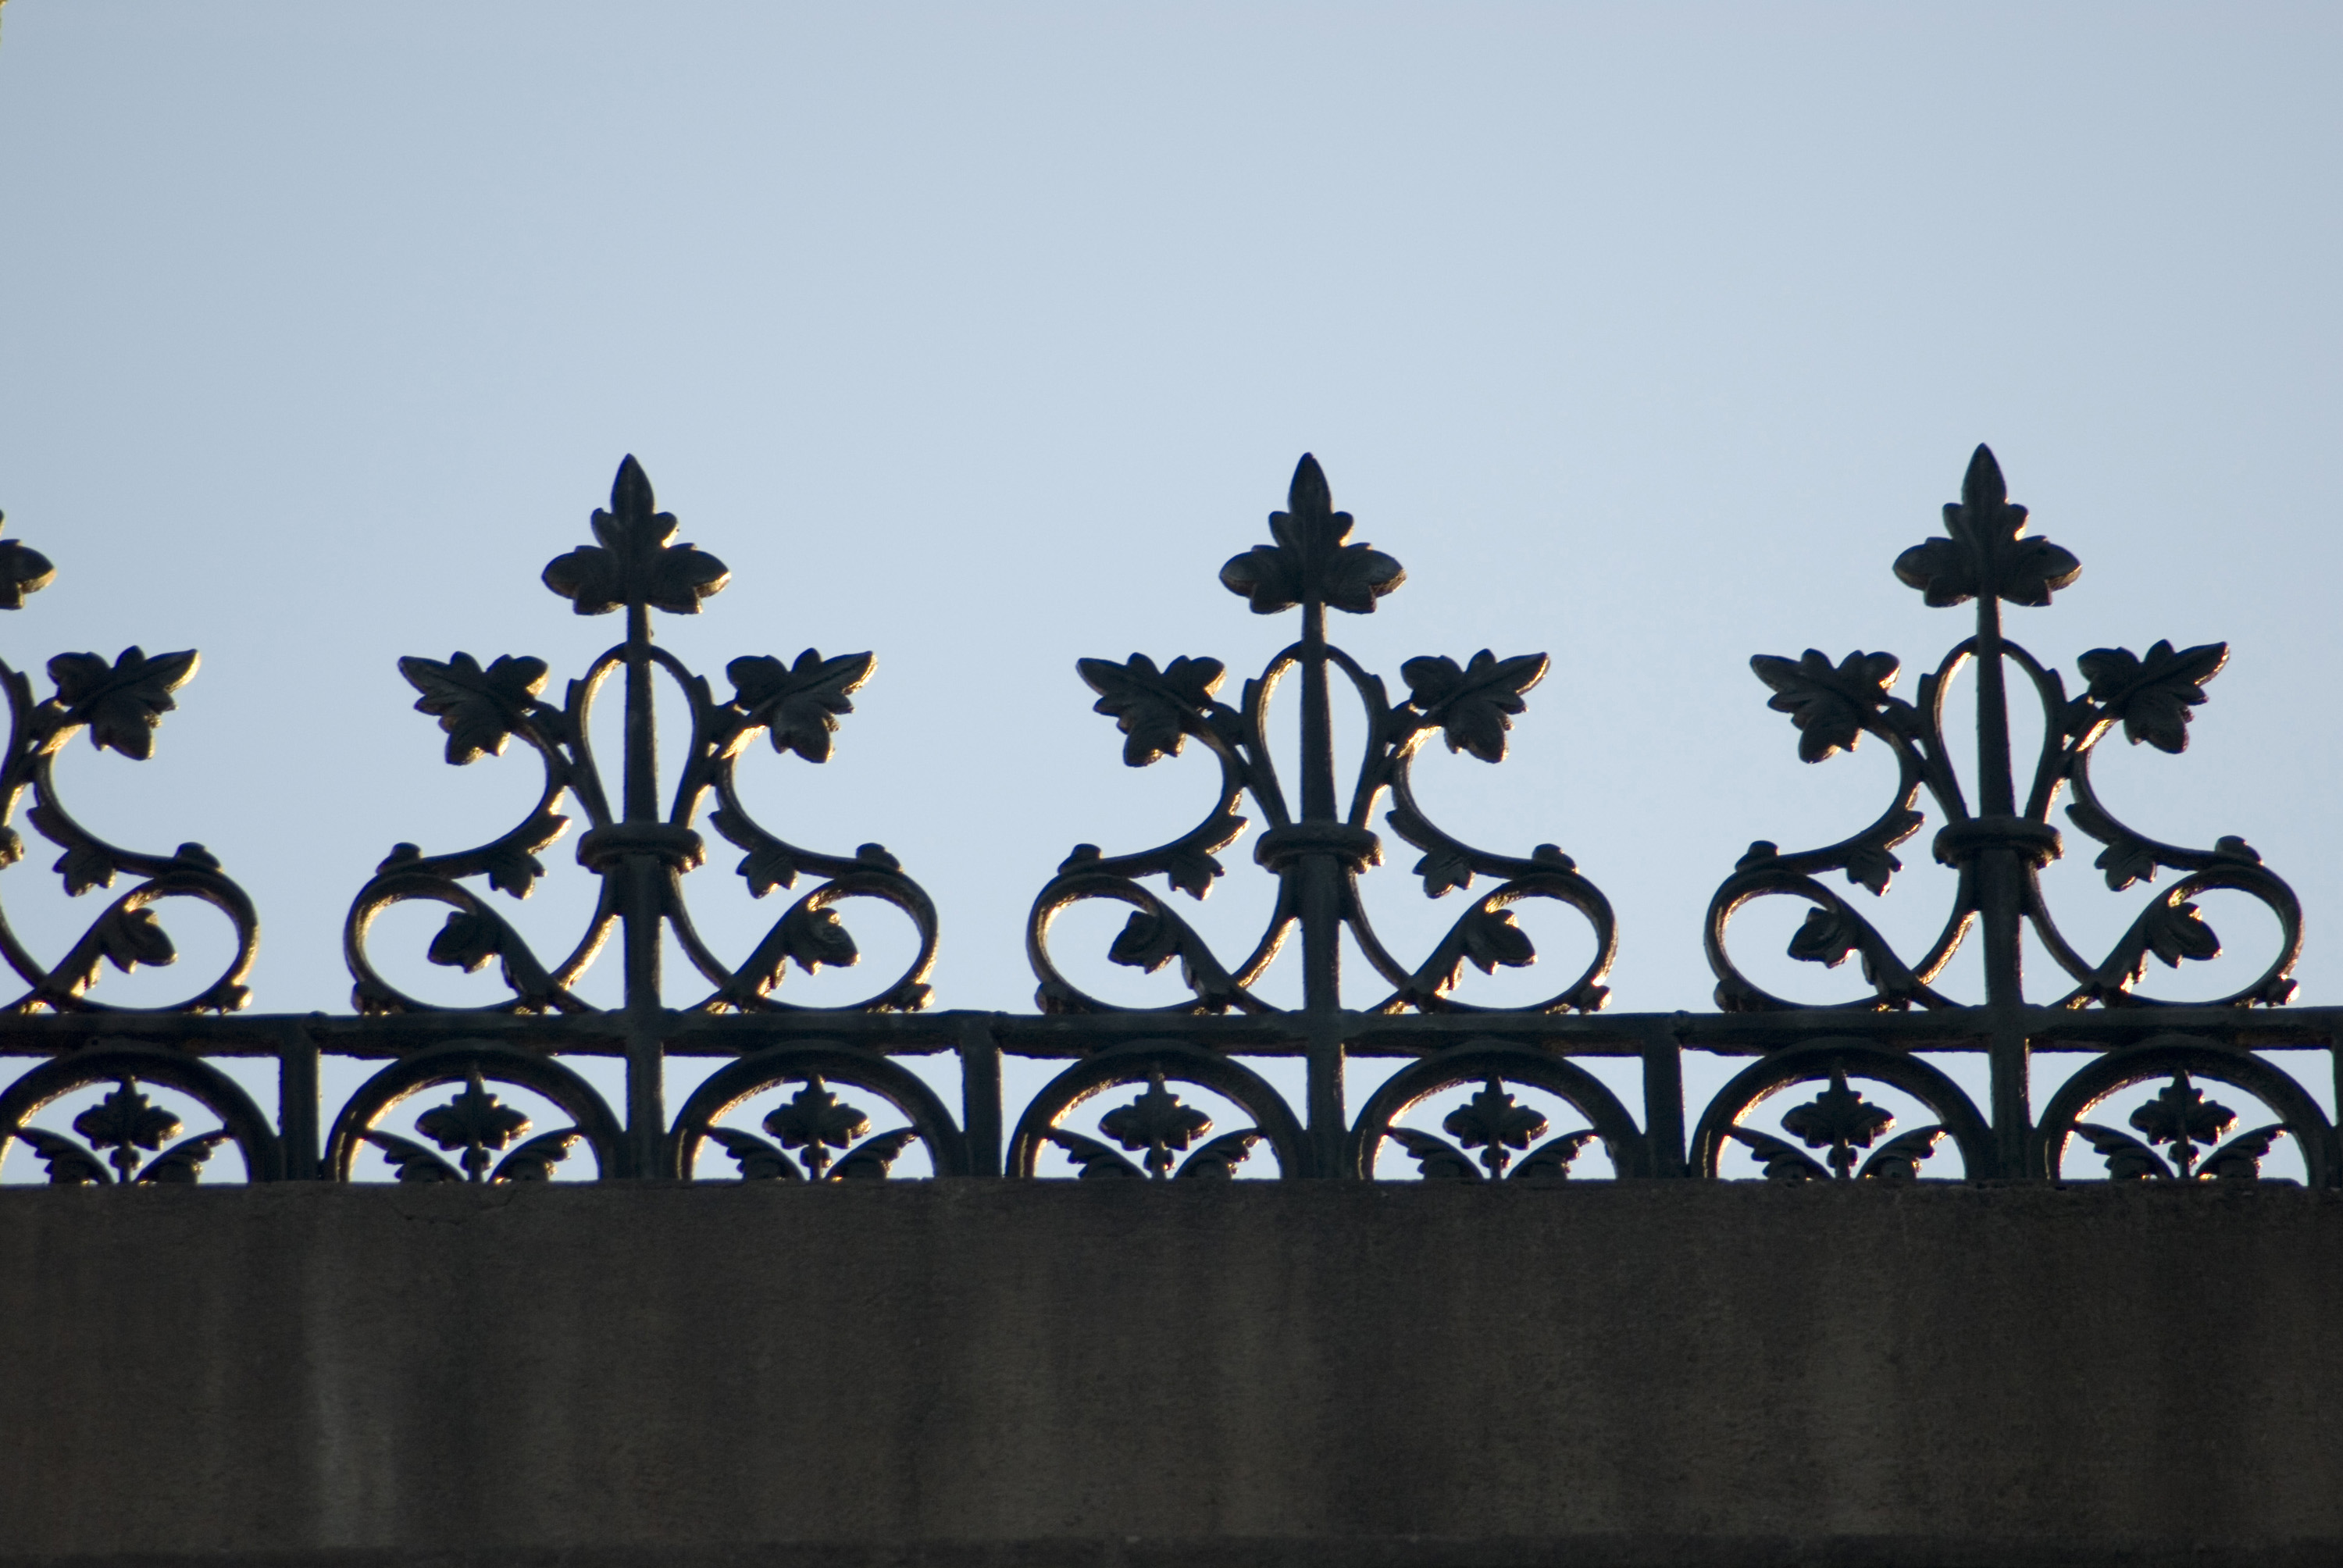 roof decoration, a freze of ornate cast iron